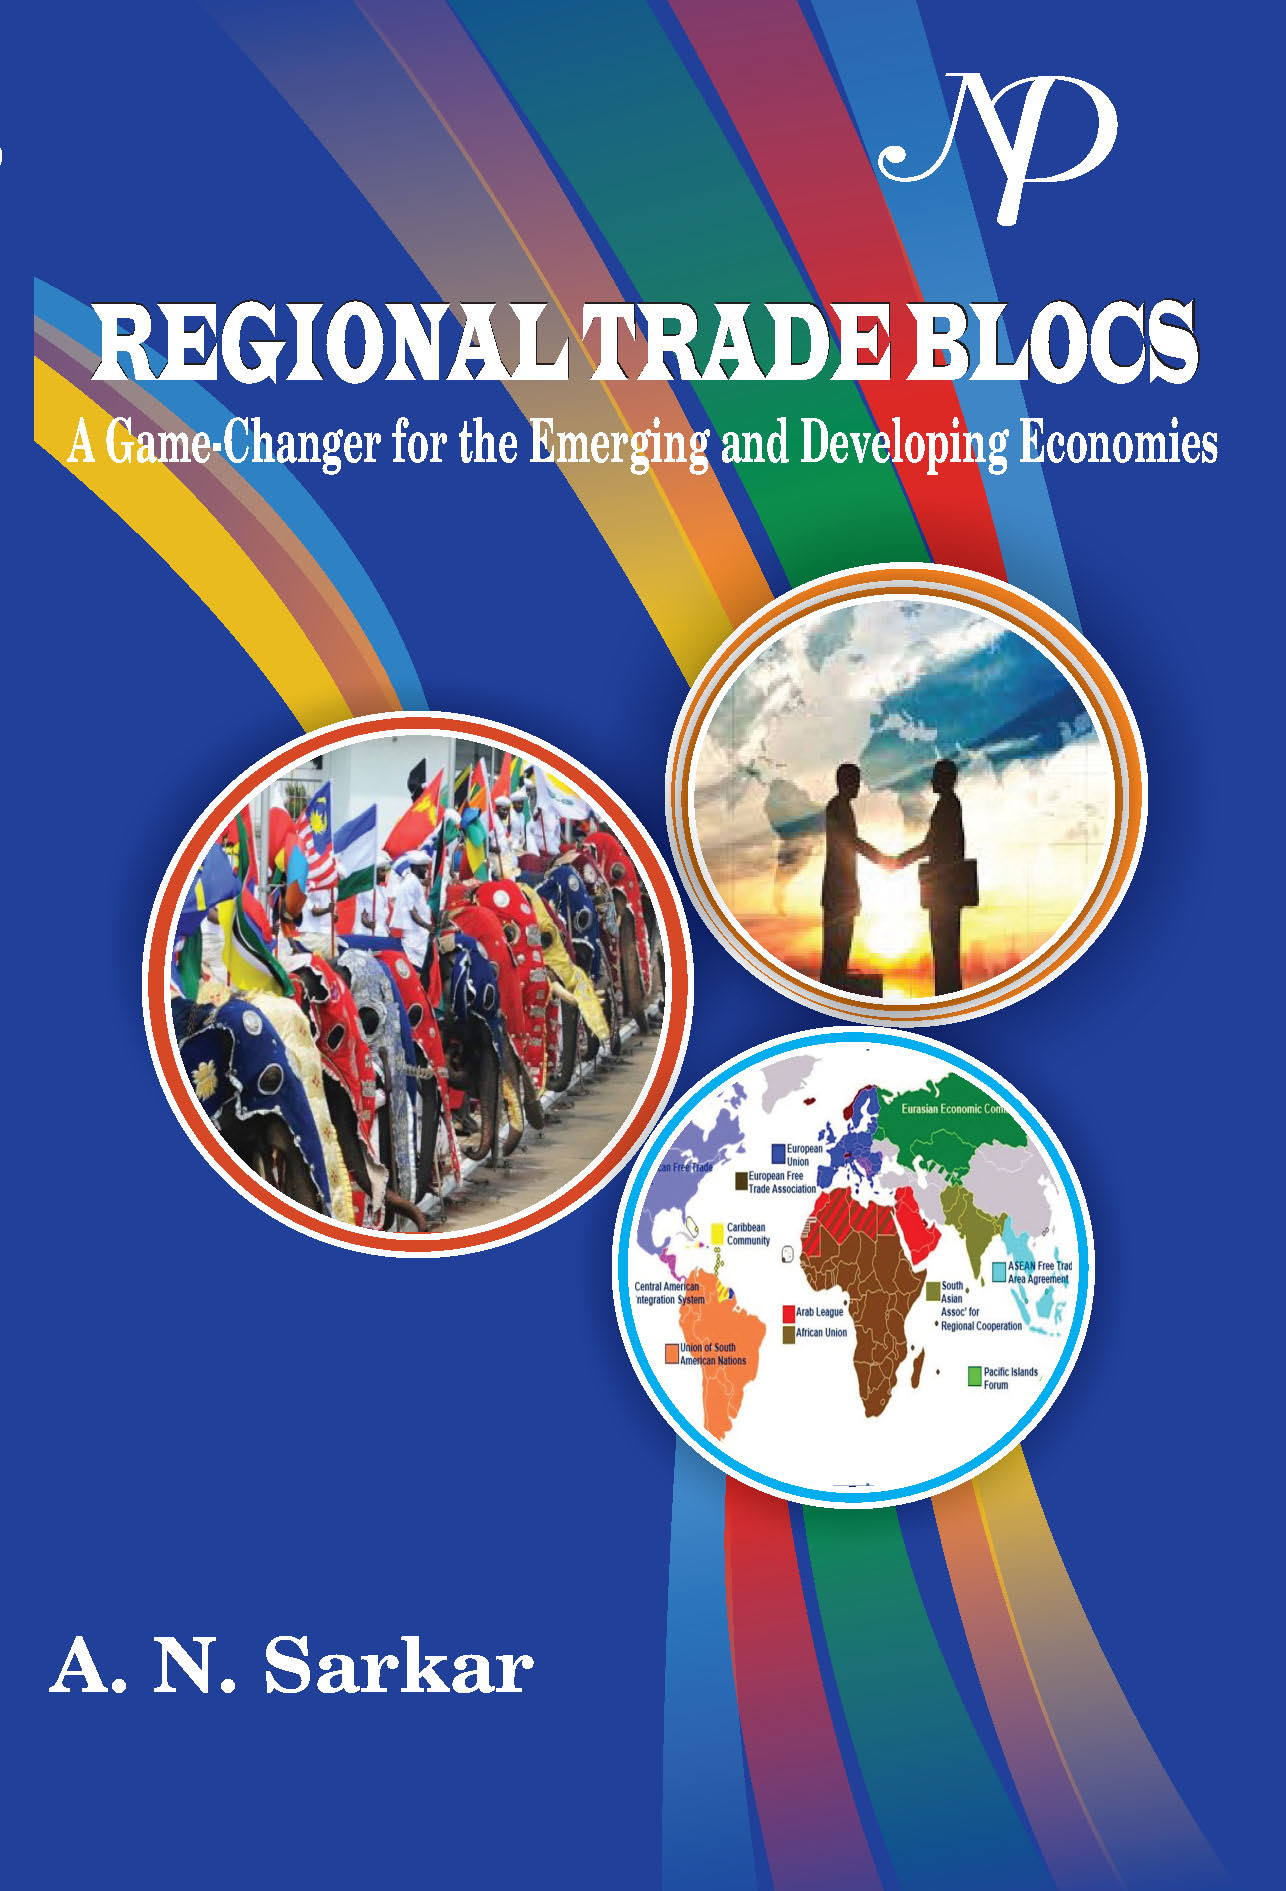 Regional Trade Blocs A Game-Changer for the Emerging and Developing Economies